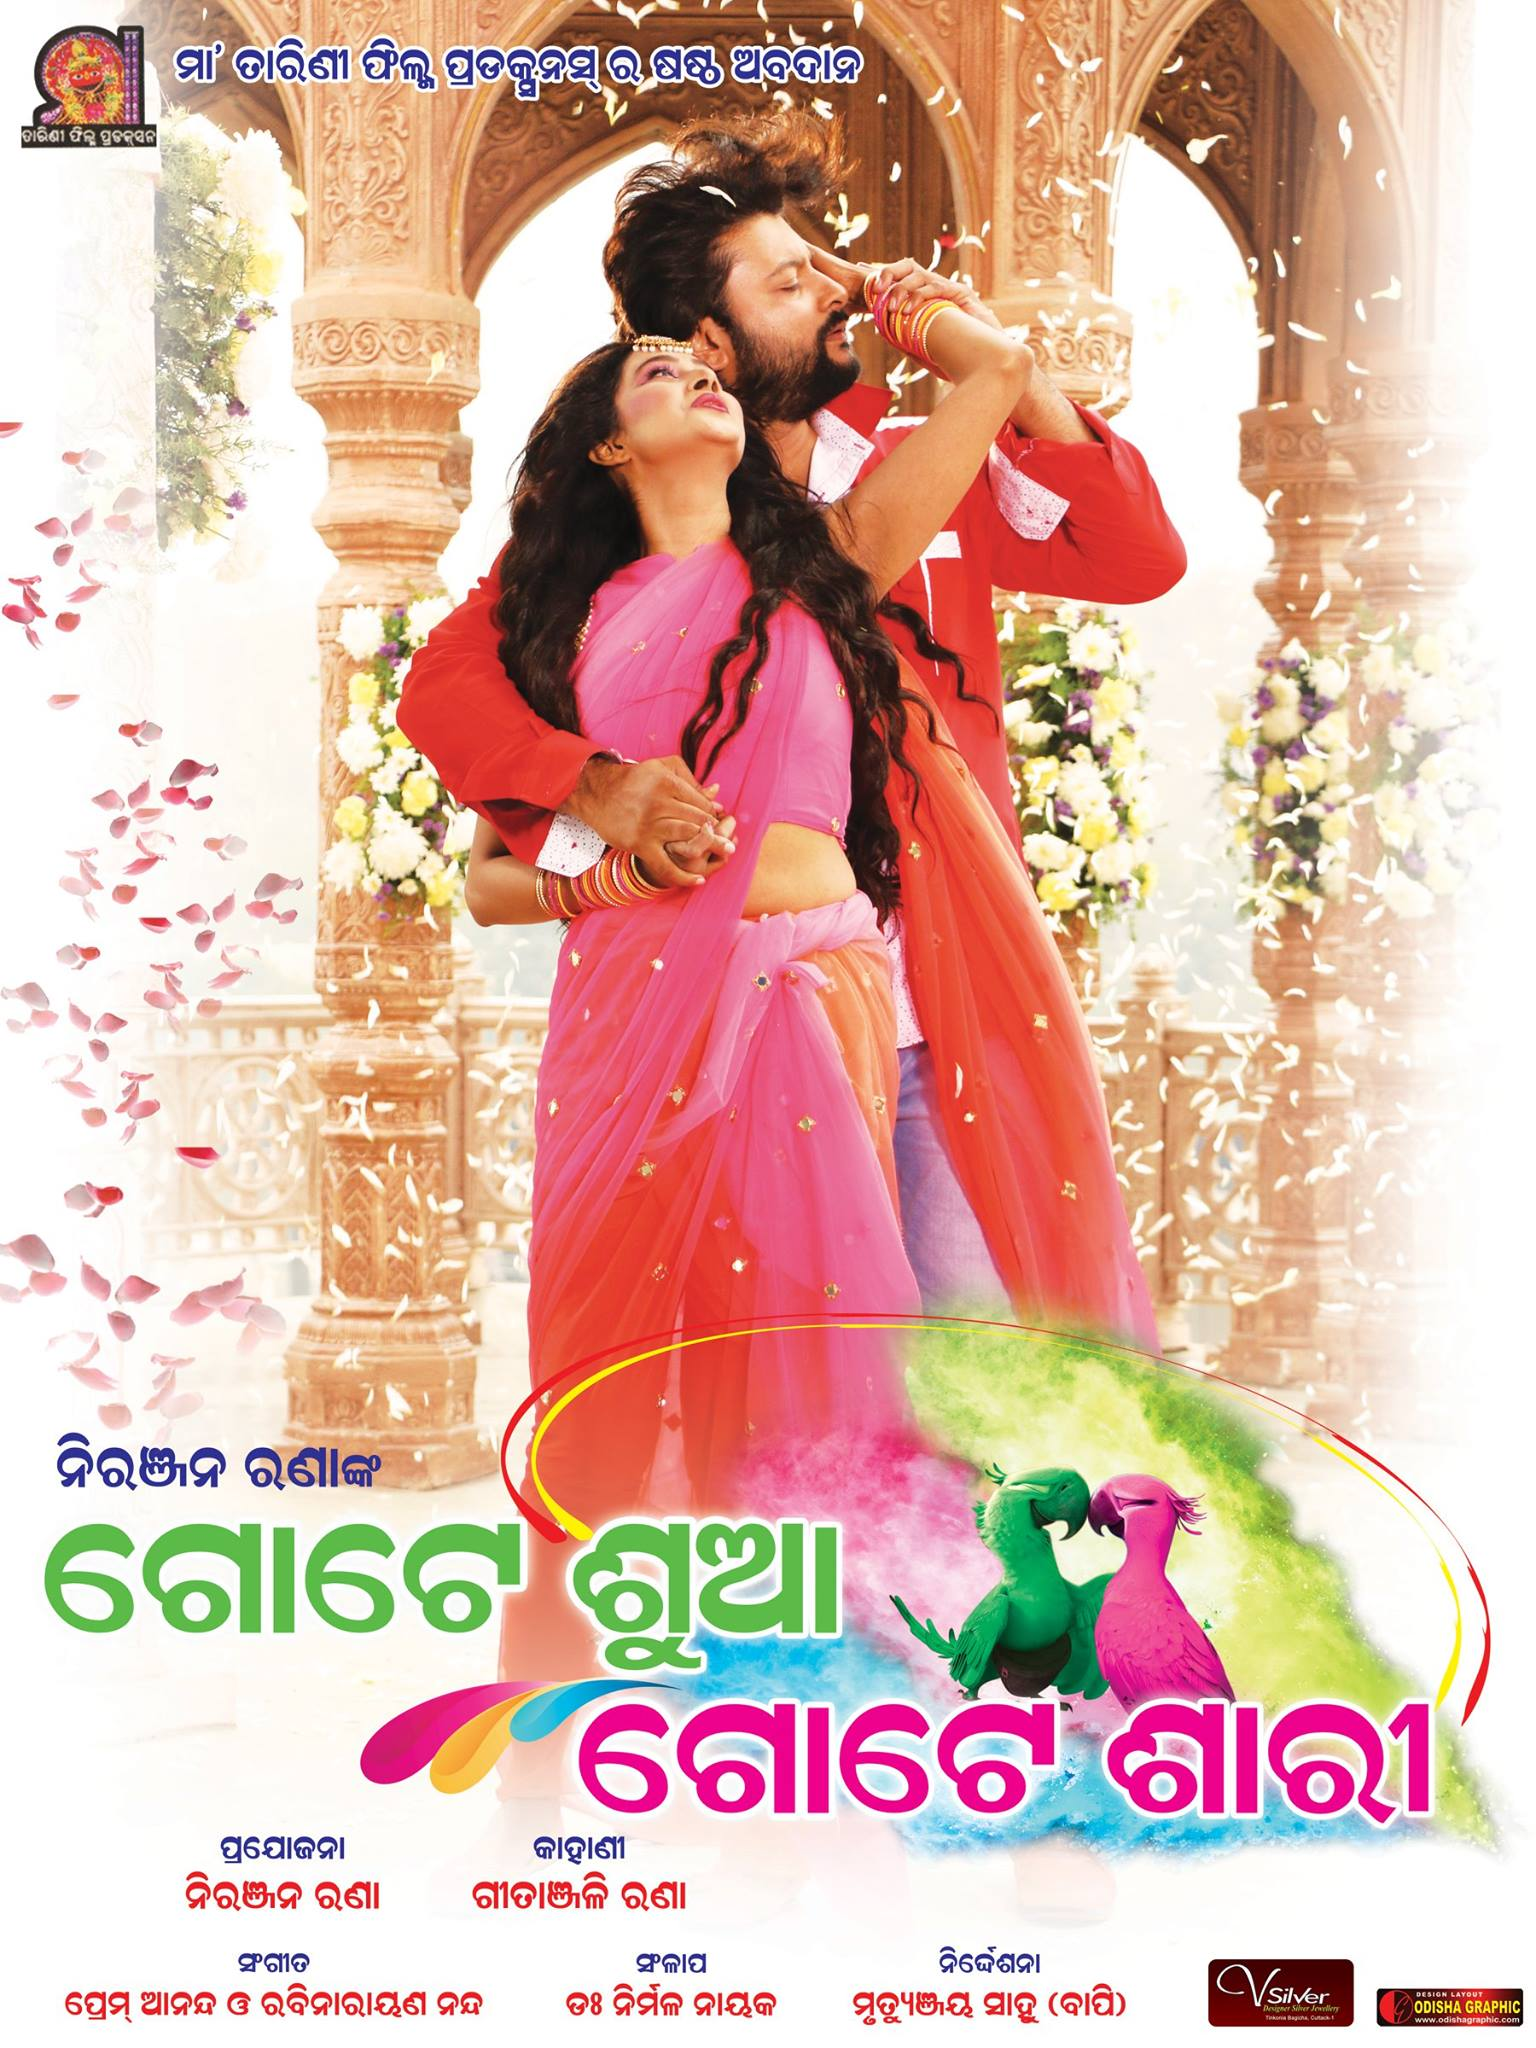 Top 10 Odia film Posters 8